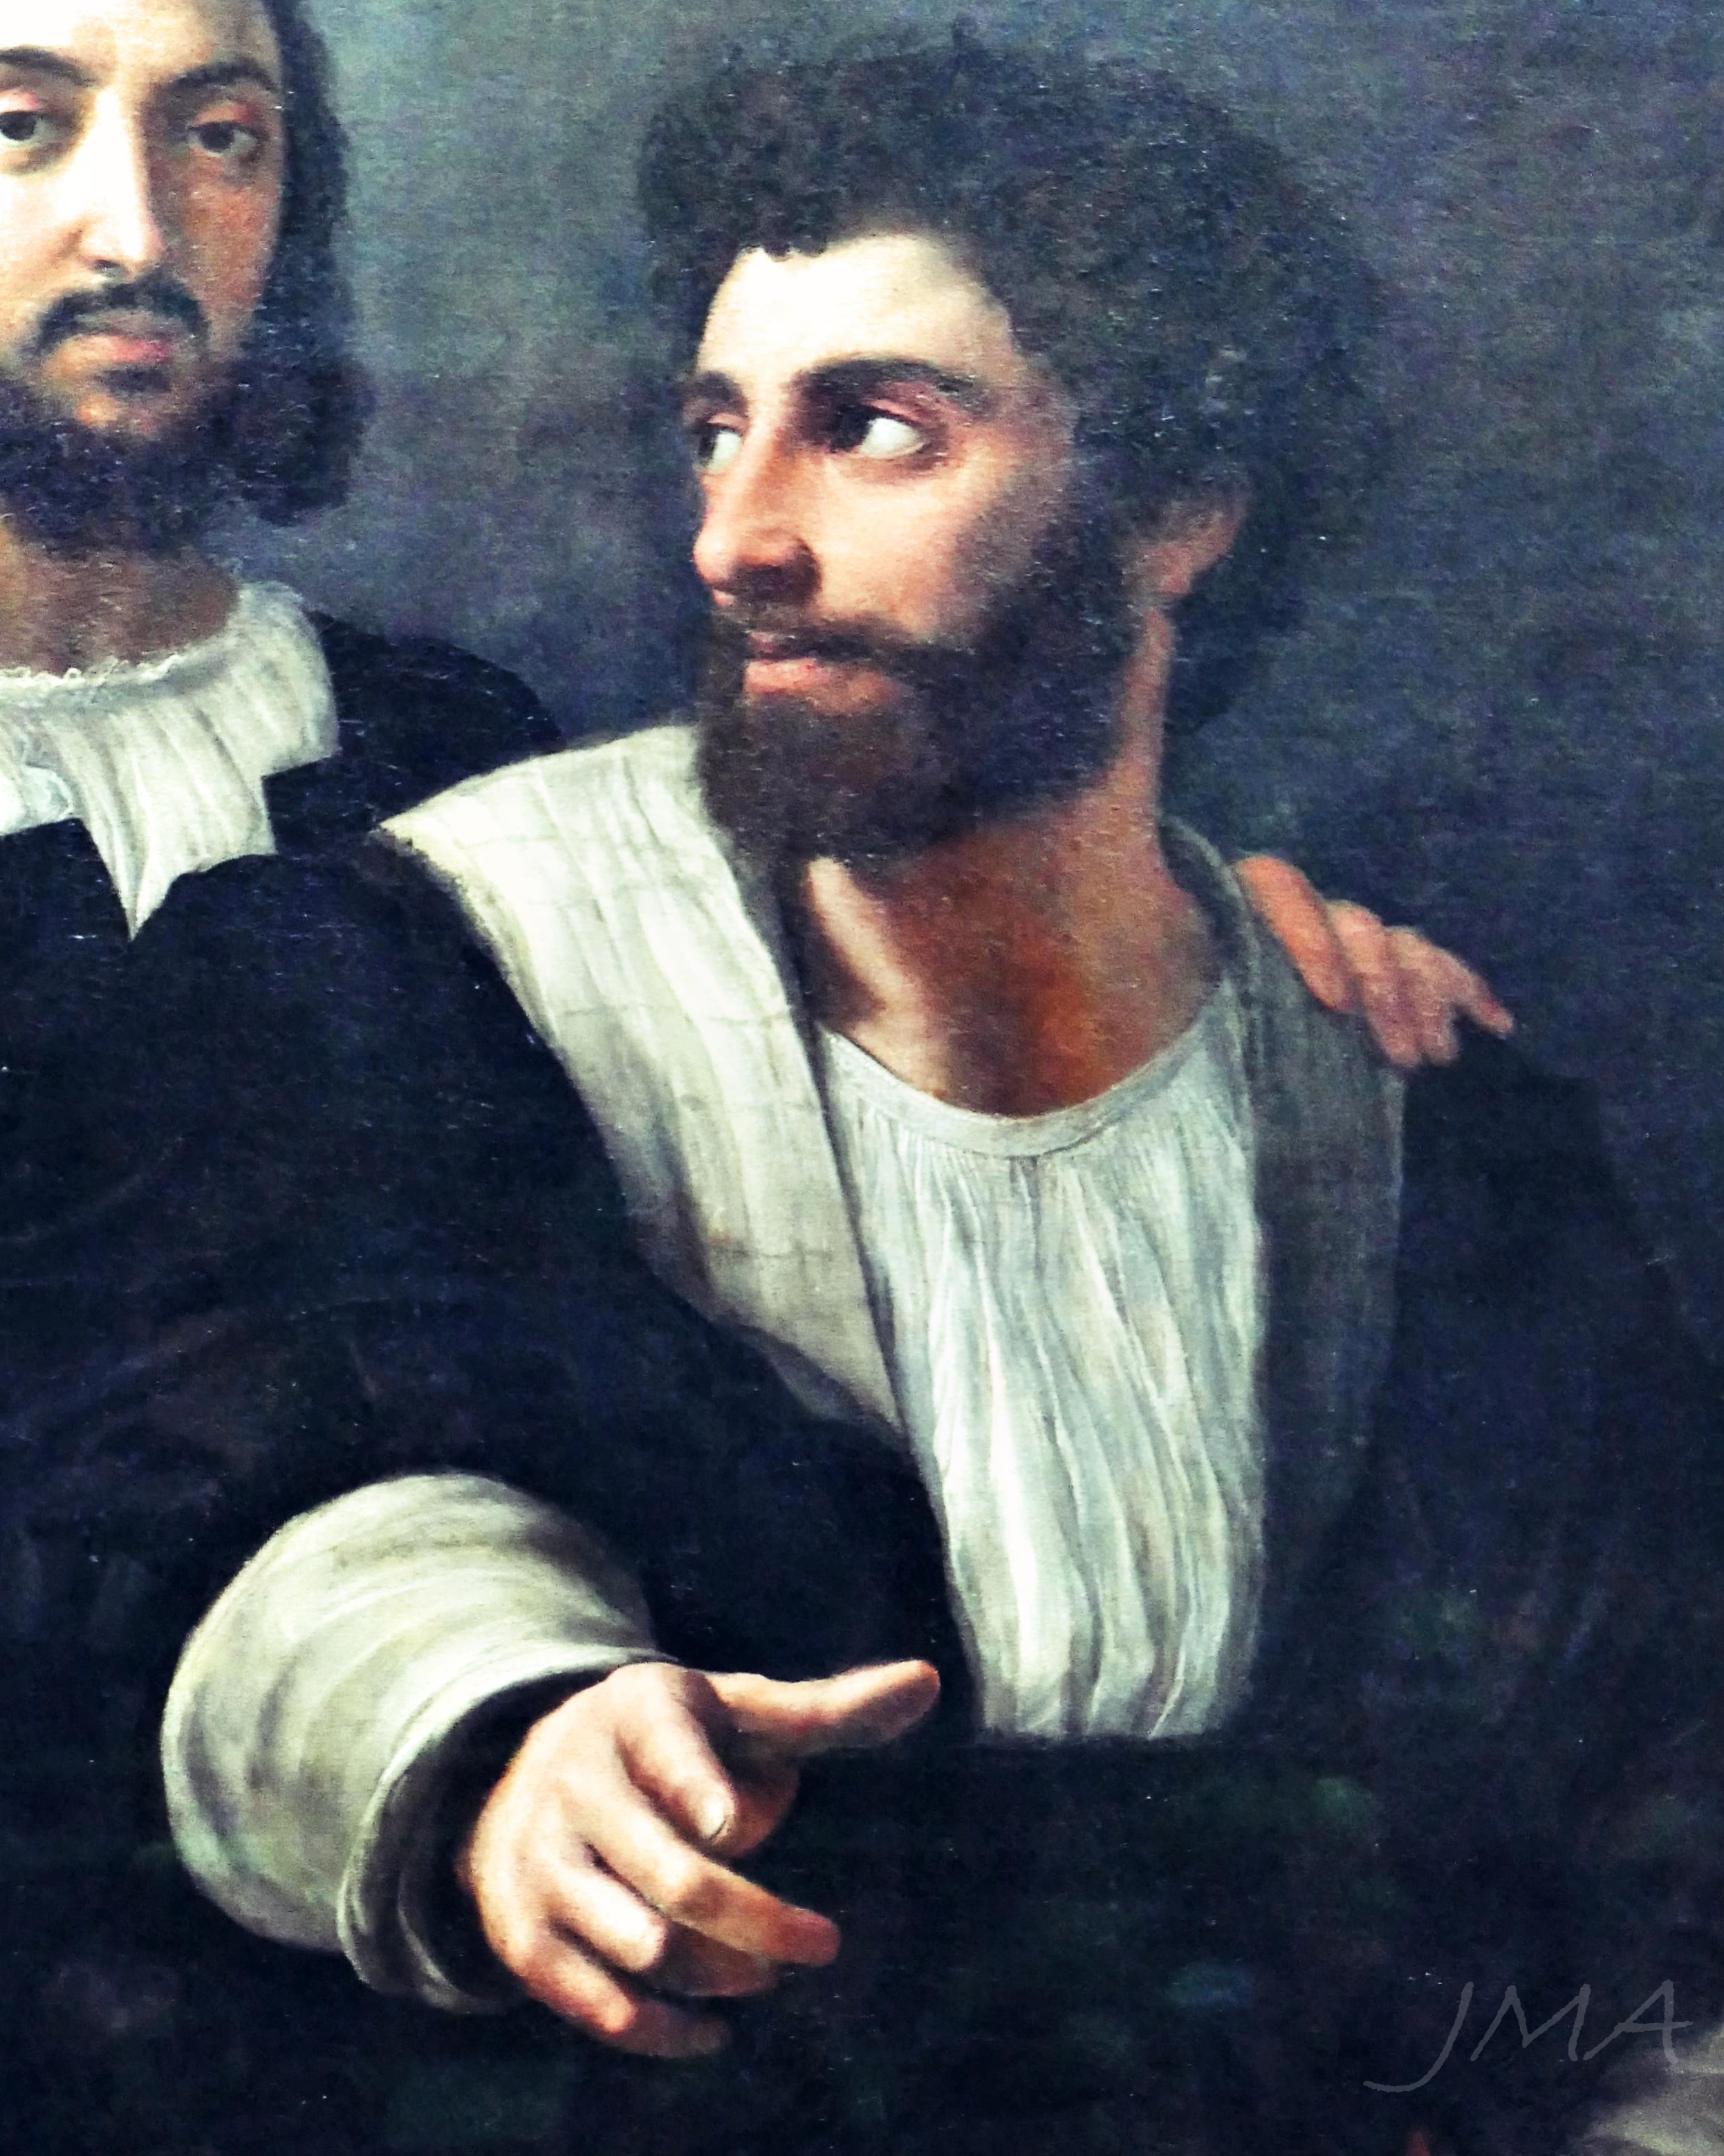 Traveling France. Raphael, self portrait with a friend, Louvre.